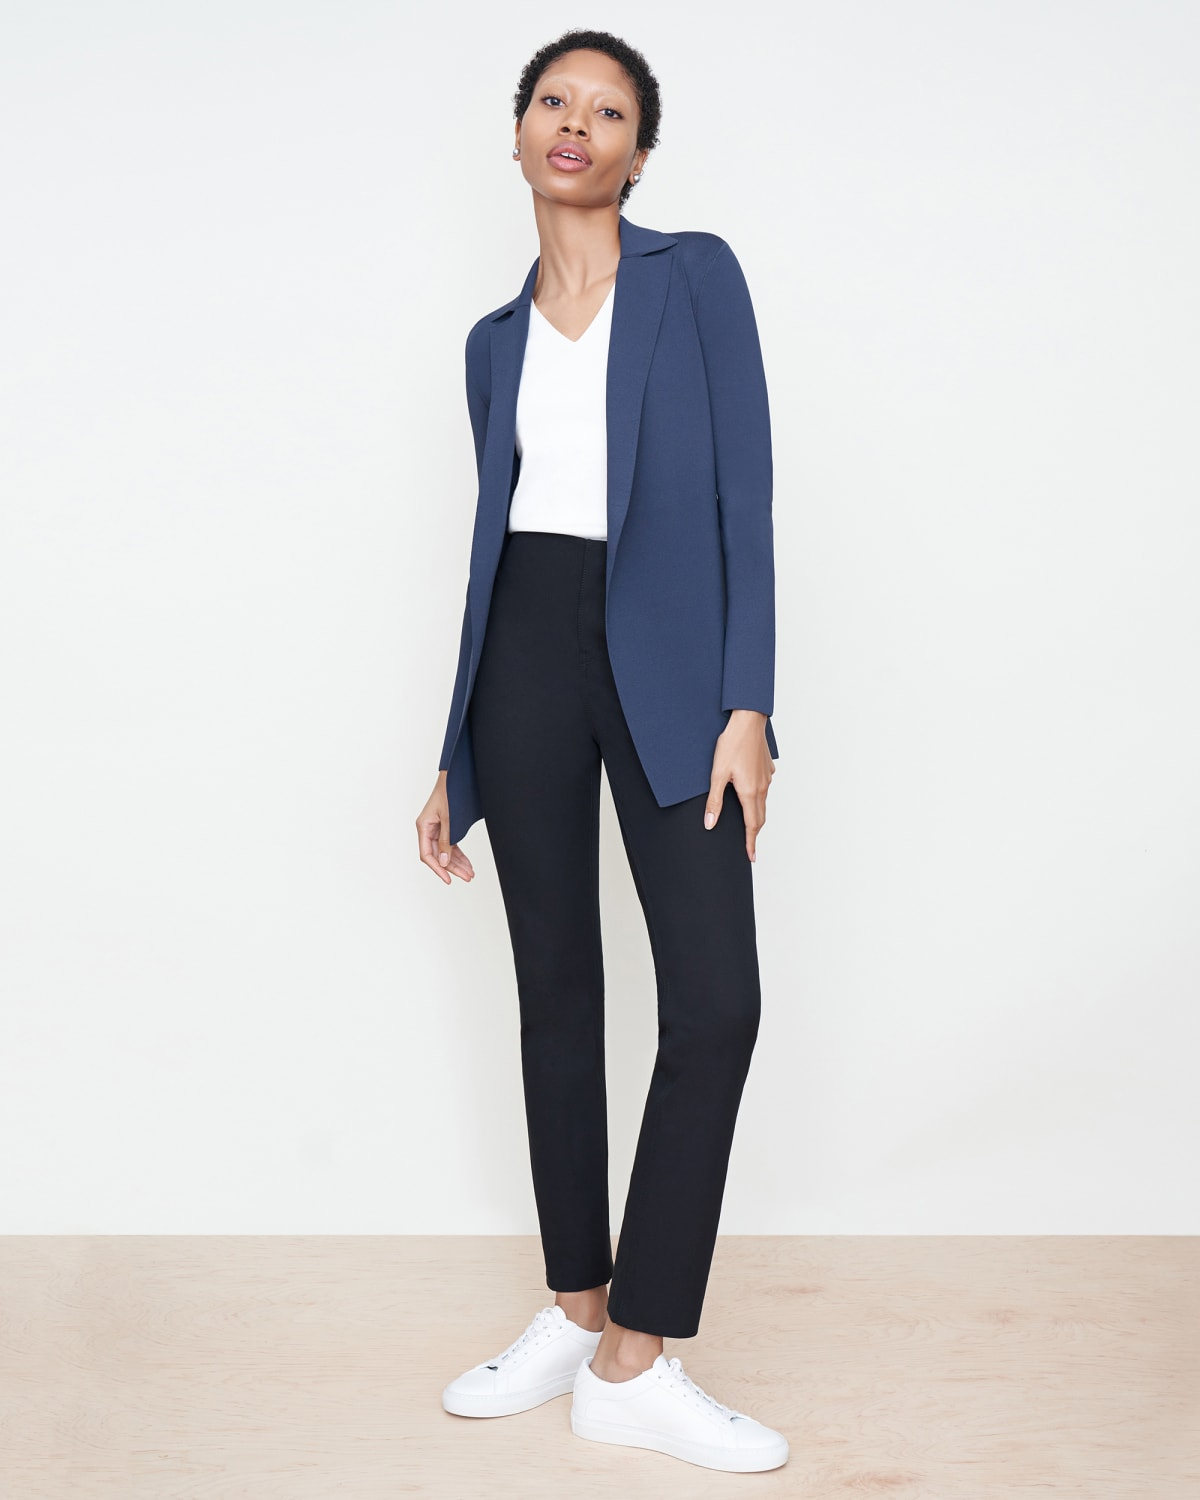 navy blazer black pants How to Wear Navy and Black Together: 7 Chic Looks for Work